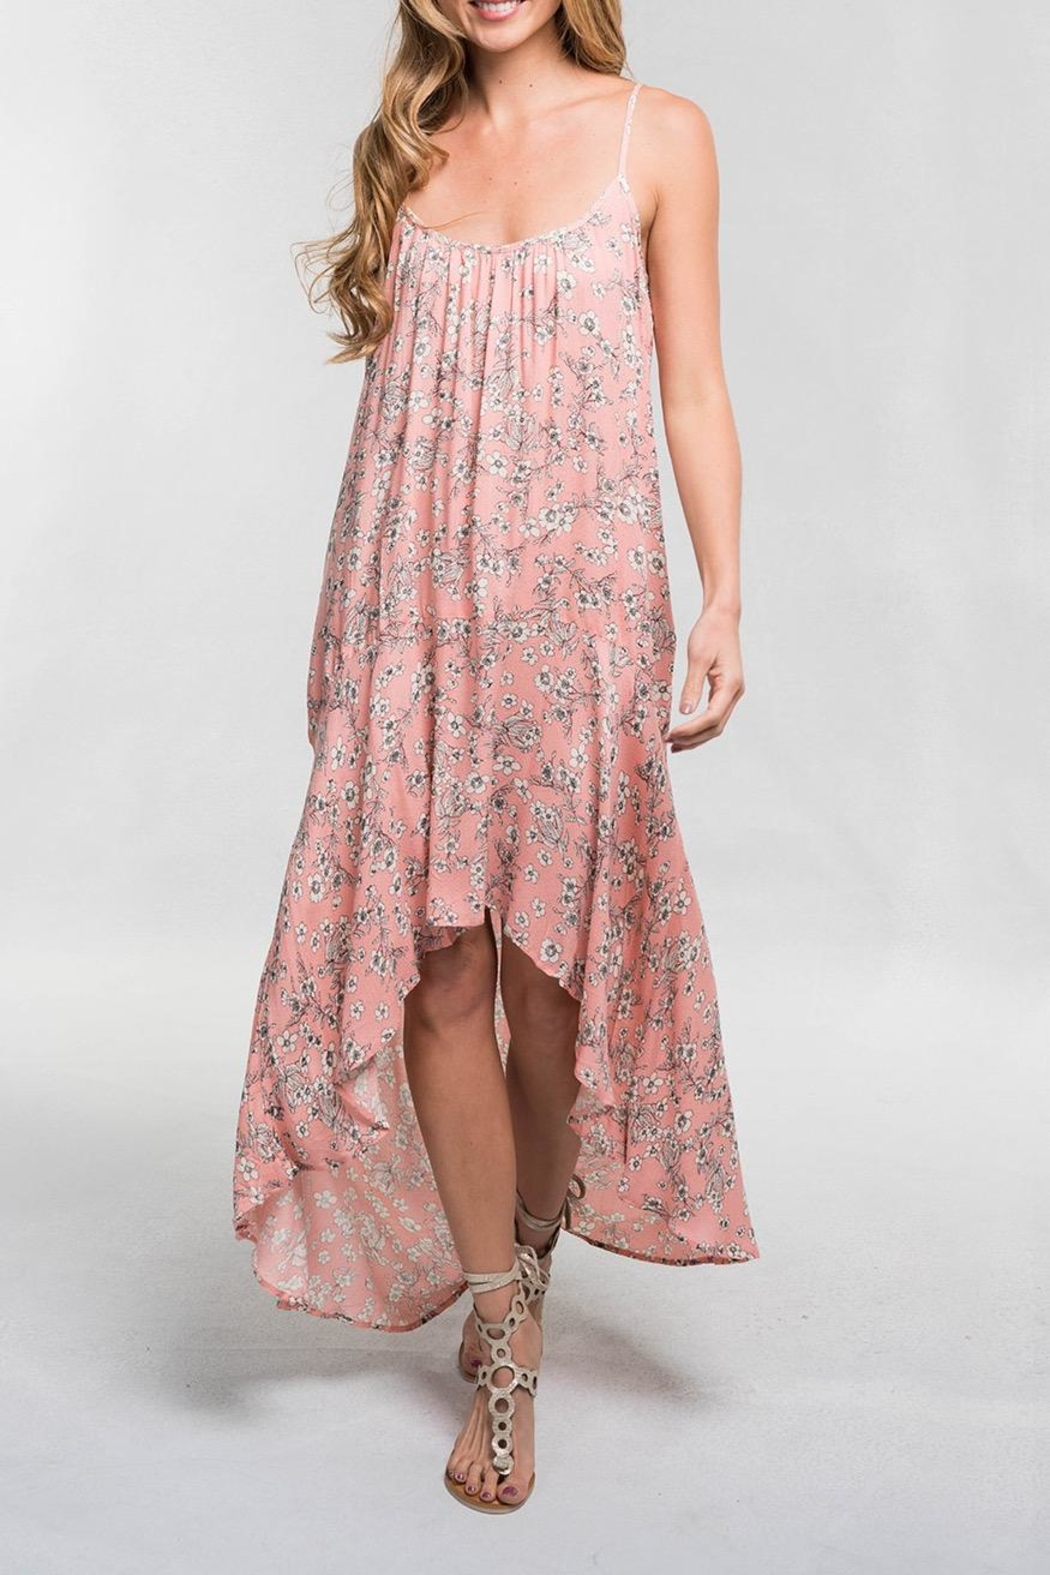 Lovestitch Pink Floral Maxi - Main Image